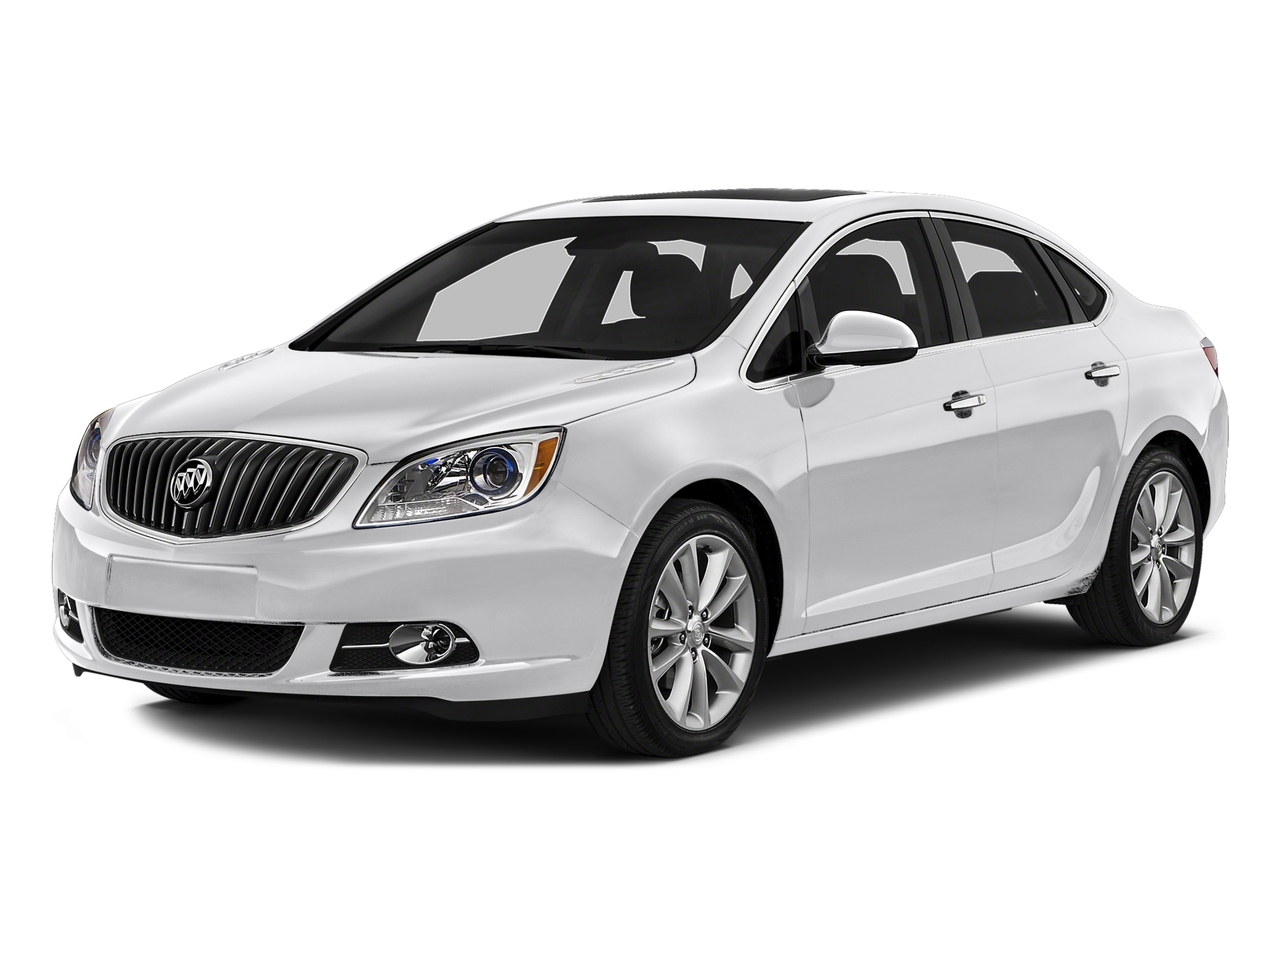 2016 Buick Verano LEATHER GROUP 4dr Car Slide